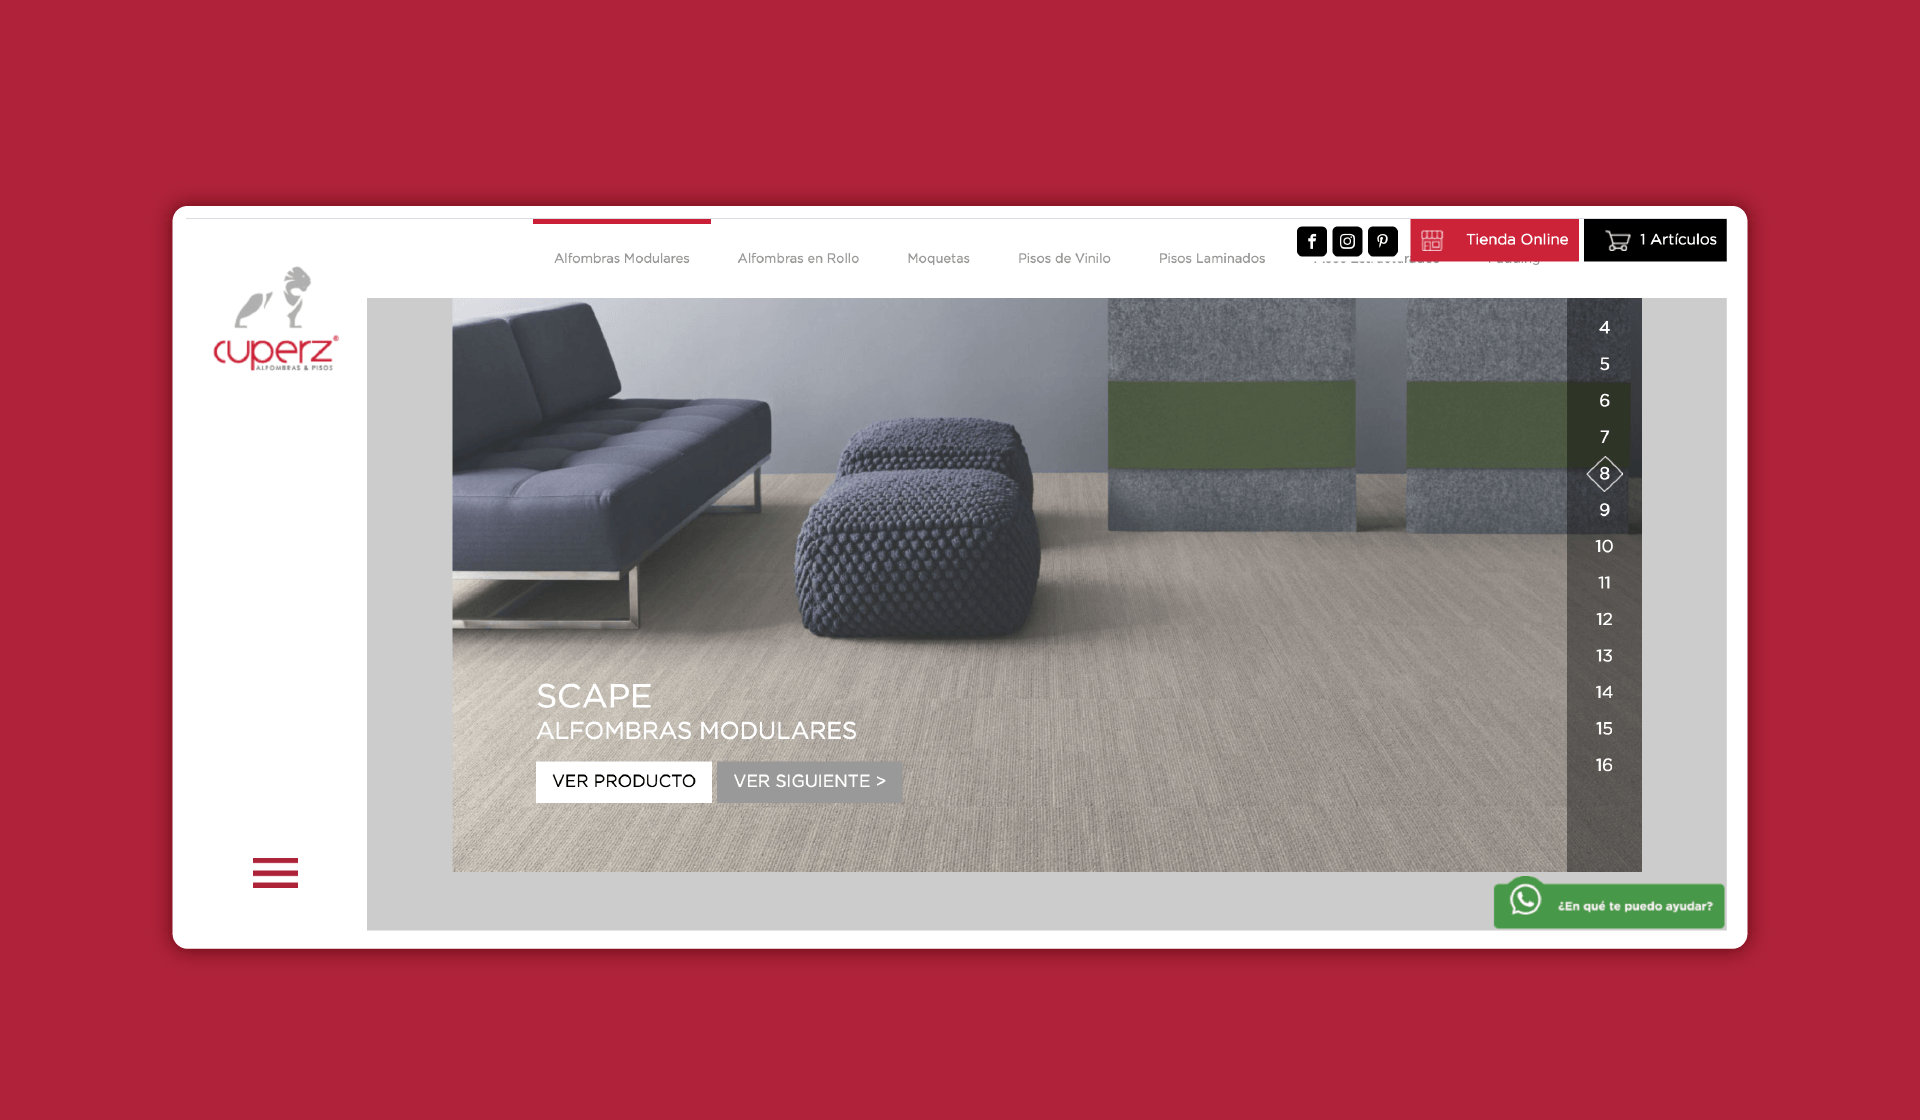 Cuperz – Web